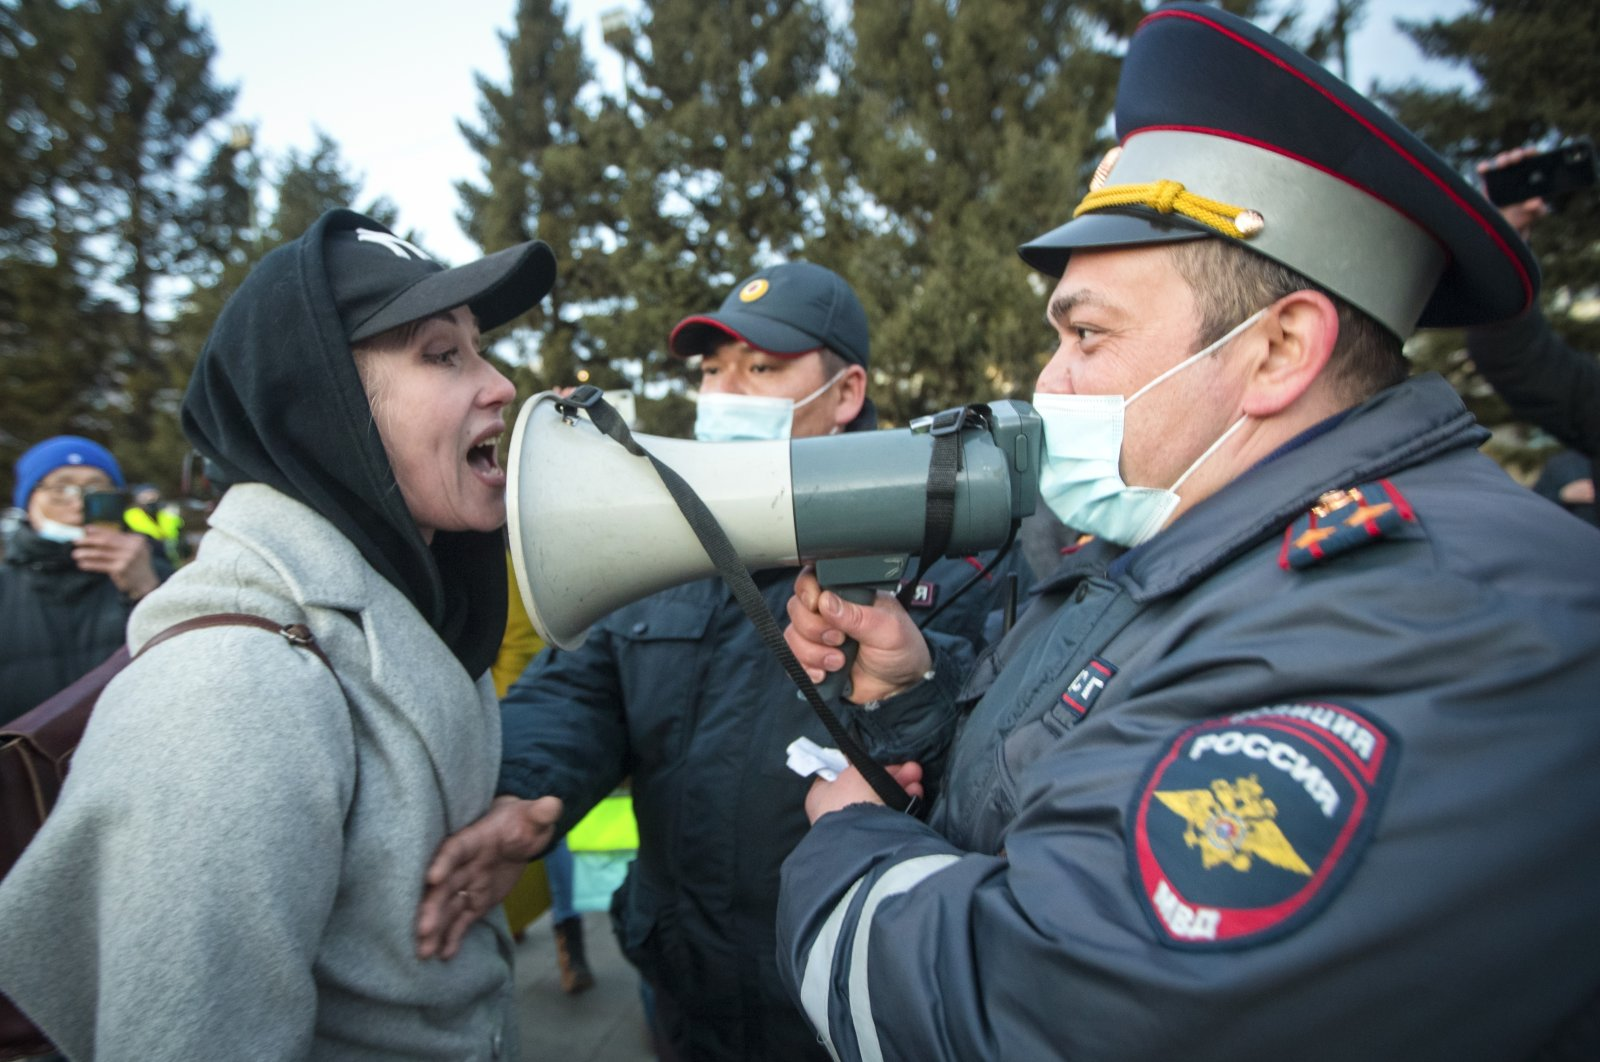 A woman argues with a police officer during a protest in support of jailed opposition leader Alexei Navalny in Ulan-Ude, the regional capital of Buryatia, a region near the Russia-Mongolia border, Russia, April 21, 2021. (AP Photo)